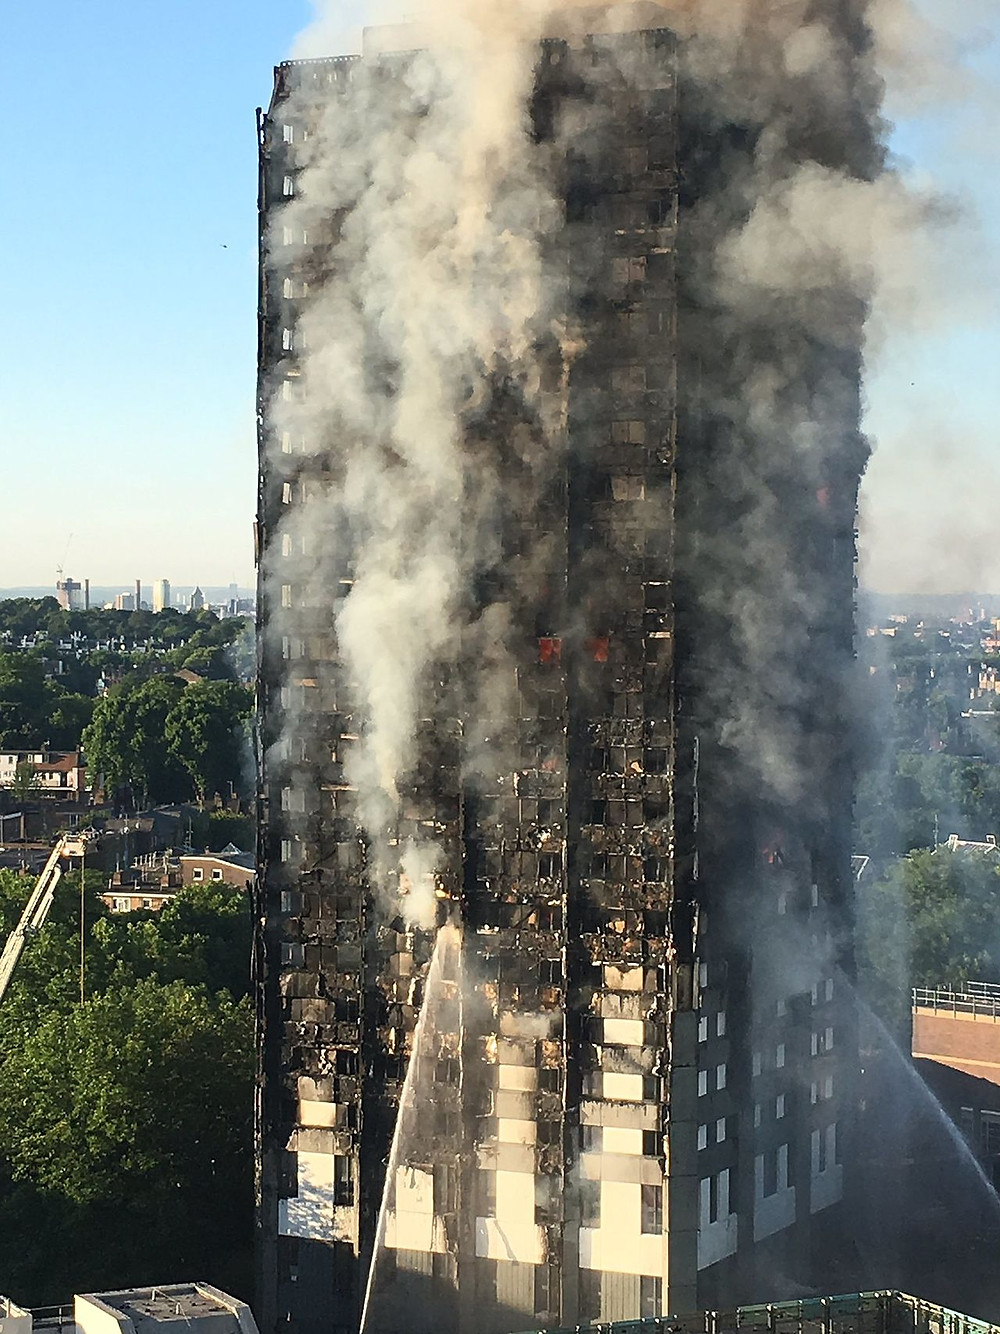 Grenfell Tower disaster - photo credit: https://en.wikipedia.org/wiki/Grenfell_Tower_fire#/media/File:Grenfell_Tower_fire_morning.jpg